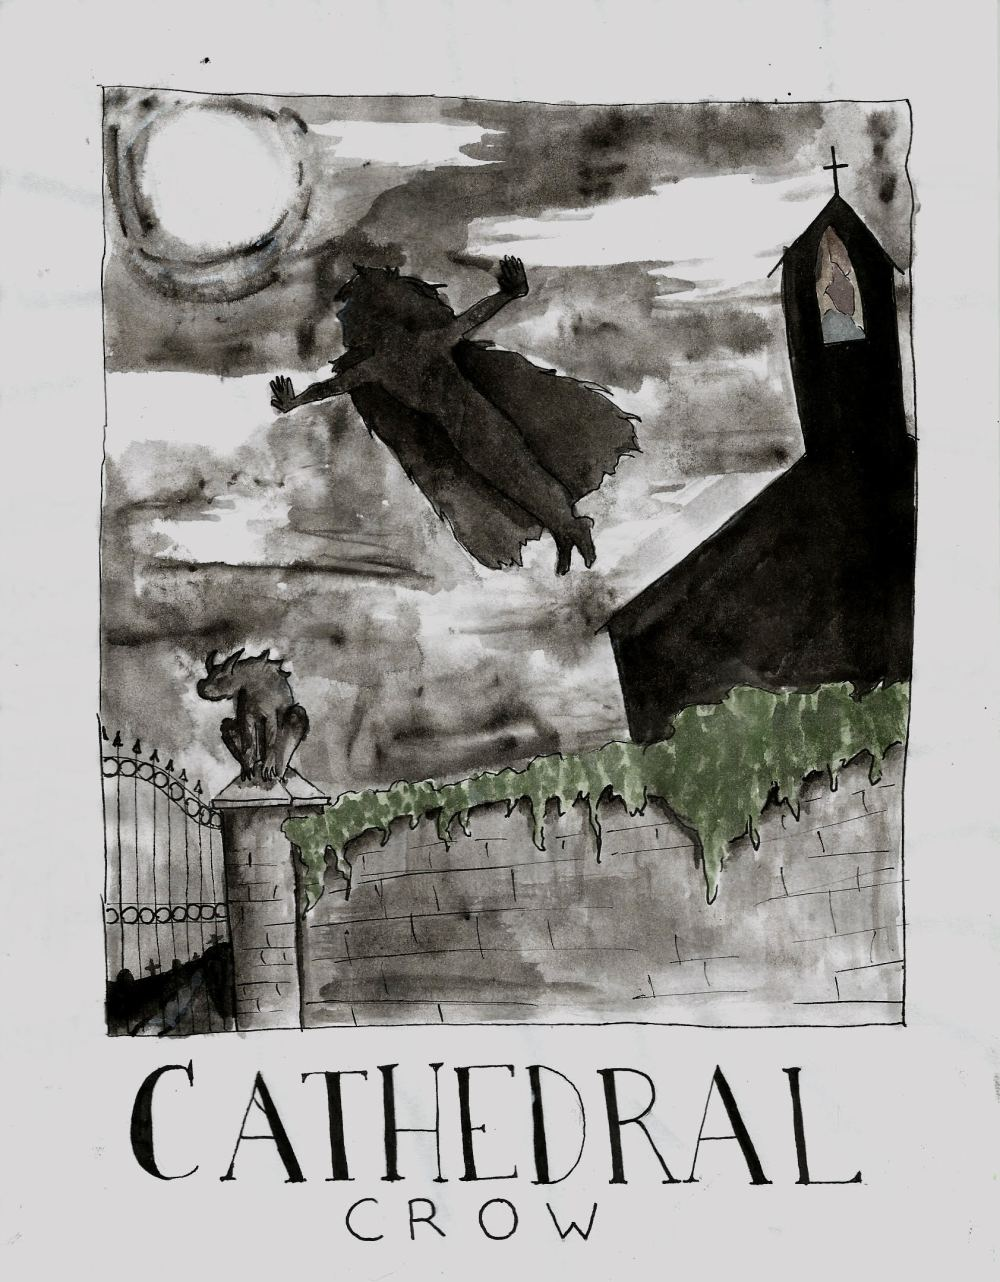 'Cathedral Crow' - Illustration by Sophia Johnson, based on an original story by Alyson Faye